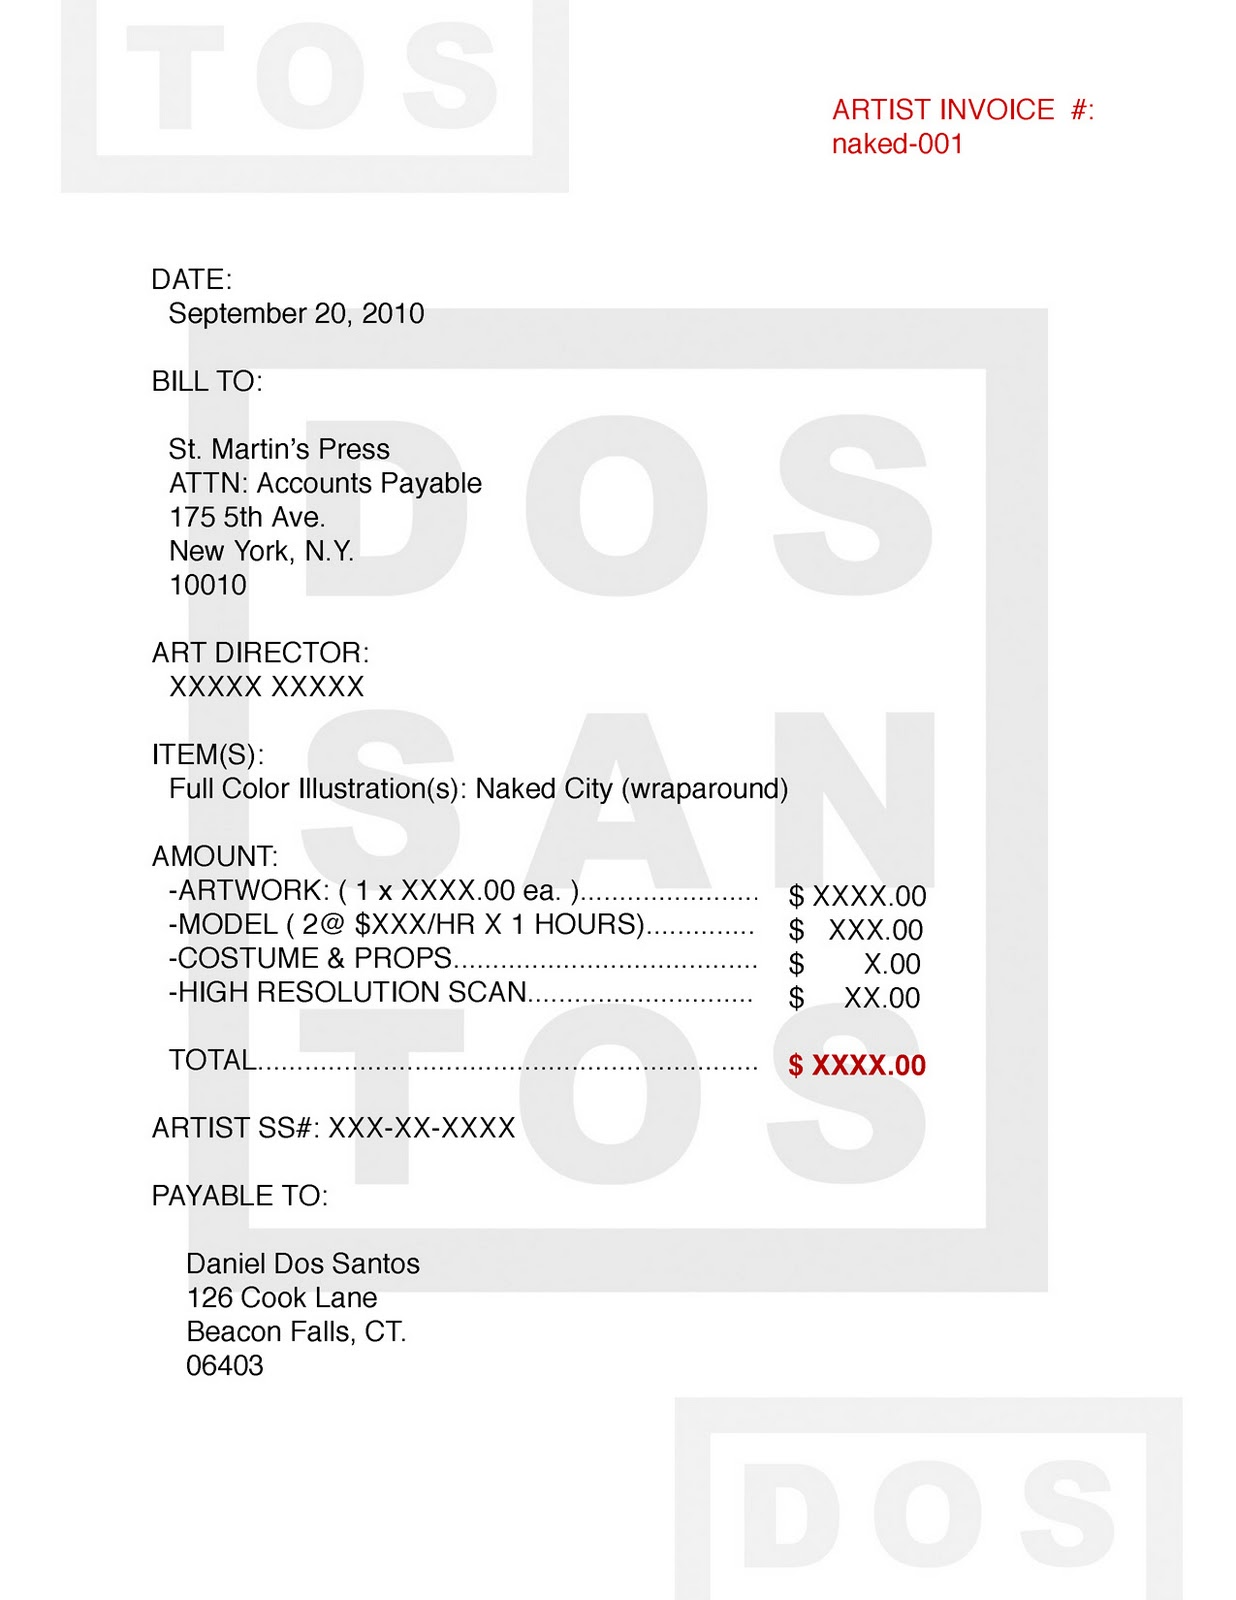 Usdgus  Nice Muddy Colors Invoices With Goodlooking I Believe That This Format Contains All The Pertinent Information That A Good Invoice Should Have And Can Serve As A Decent Template For Your Own With Awesome Auto Repair Invoice Also Fedex Invoice In Addition Sample Invoice Word And Invoices Template As Well As My Invoices And Estimates Additionally Invoice Define From Muddycolorsblogspotcom With Usdgus  Goodlooking Muddy Colors Invoices With Awesome I Believe That This Format Contains All The Pertinent Information That A Good Invoice Should Have And Can Serve As A Decent Template For Your Own And Nice Auto Repair Invoice Also Fedex Invoice In Addition Sample Invoice Word From Muddycolorsblogspotcom